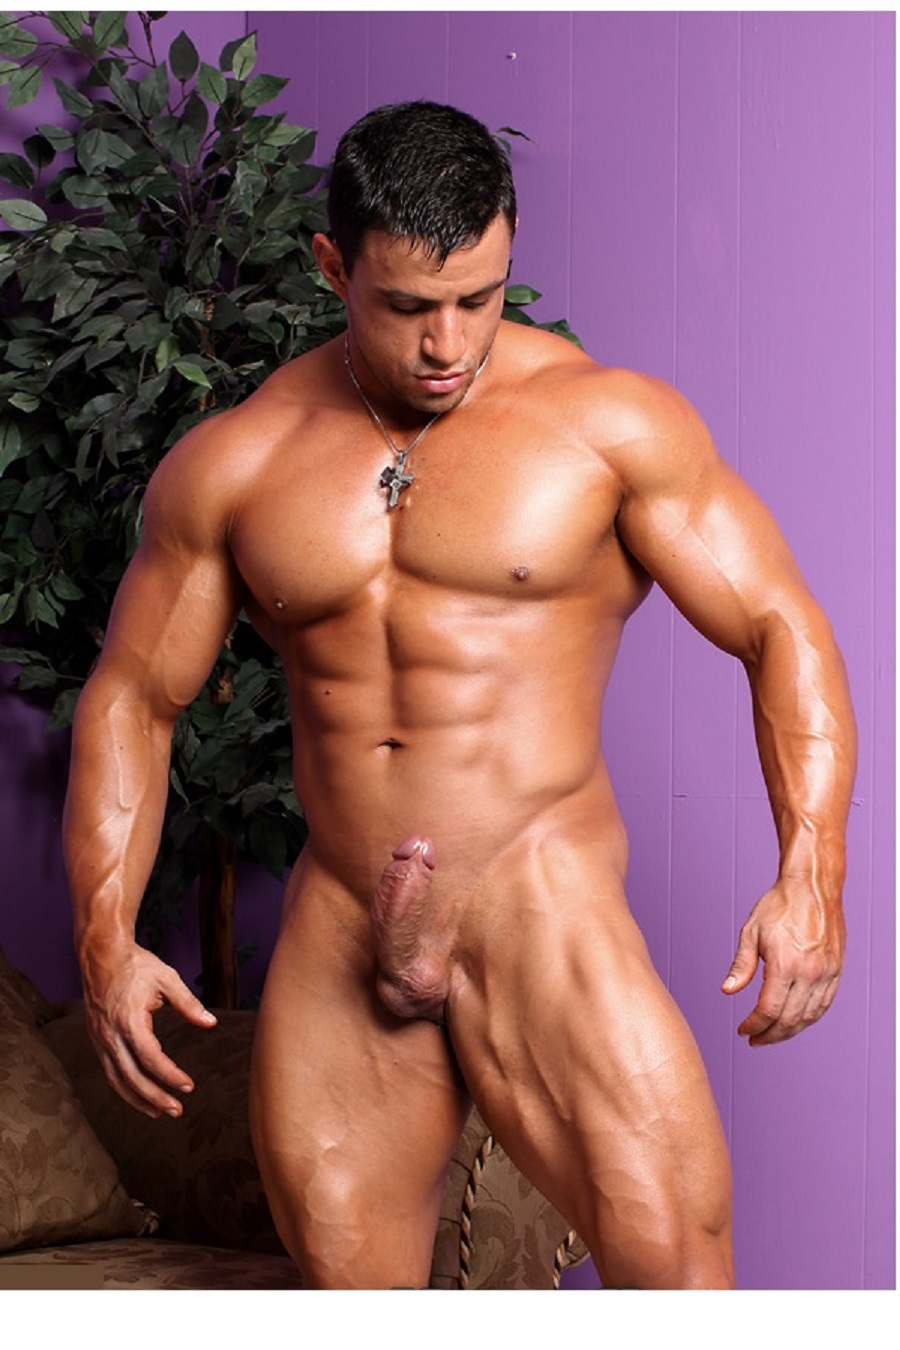 Sportsman Bulge Naked  Bodybuilder Big Cock-8698